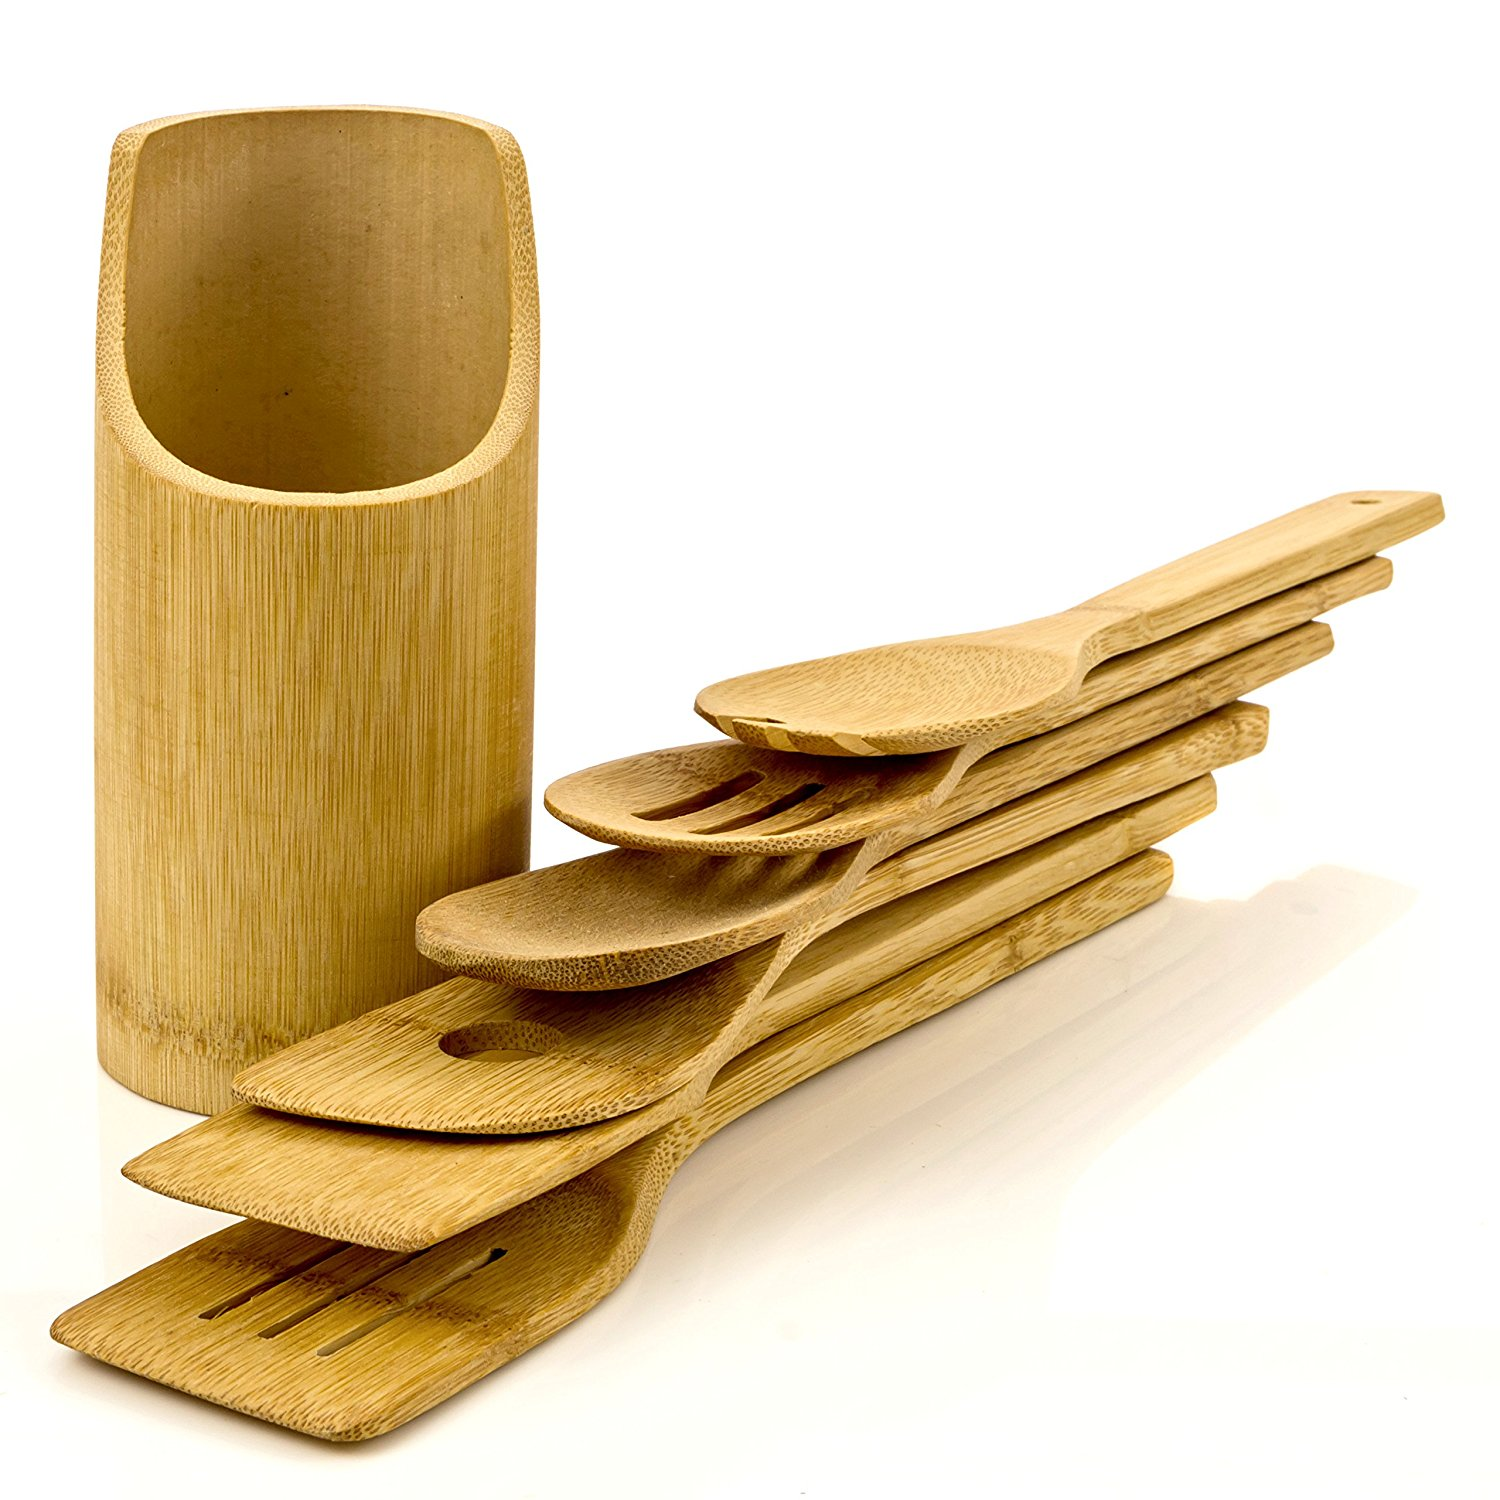 Intriom Bamboo Set of 7 Bamboo -Made Cooking / Baking Kitchen Utensils - Spatula. Mixing Spoon. Salad Serving Fork w/ Bamboo Utensils Holder